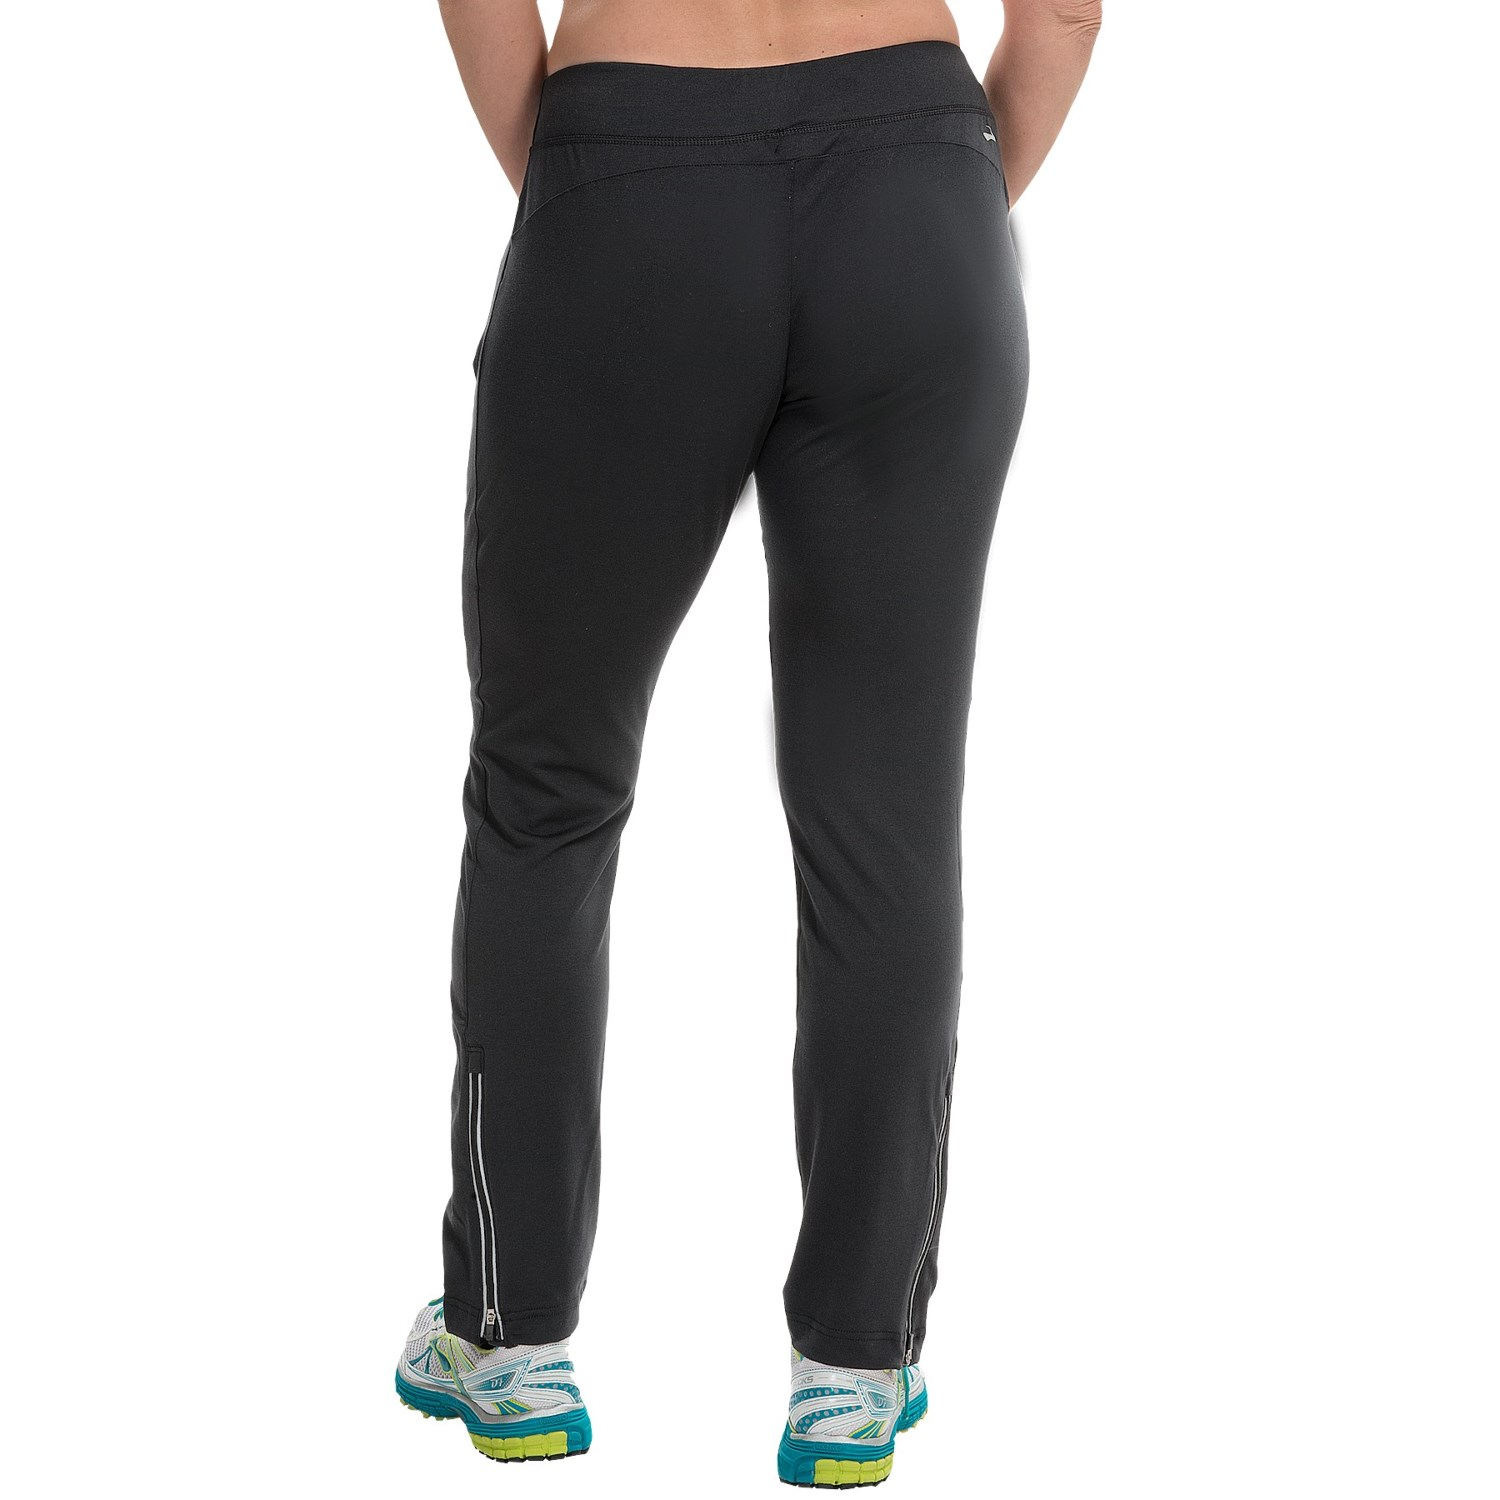 Choose from our running pants, cycling pants and yoga pants for women, to keep your routine on point. With many different fabrics, colors and styles, we have you covered.